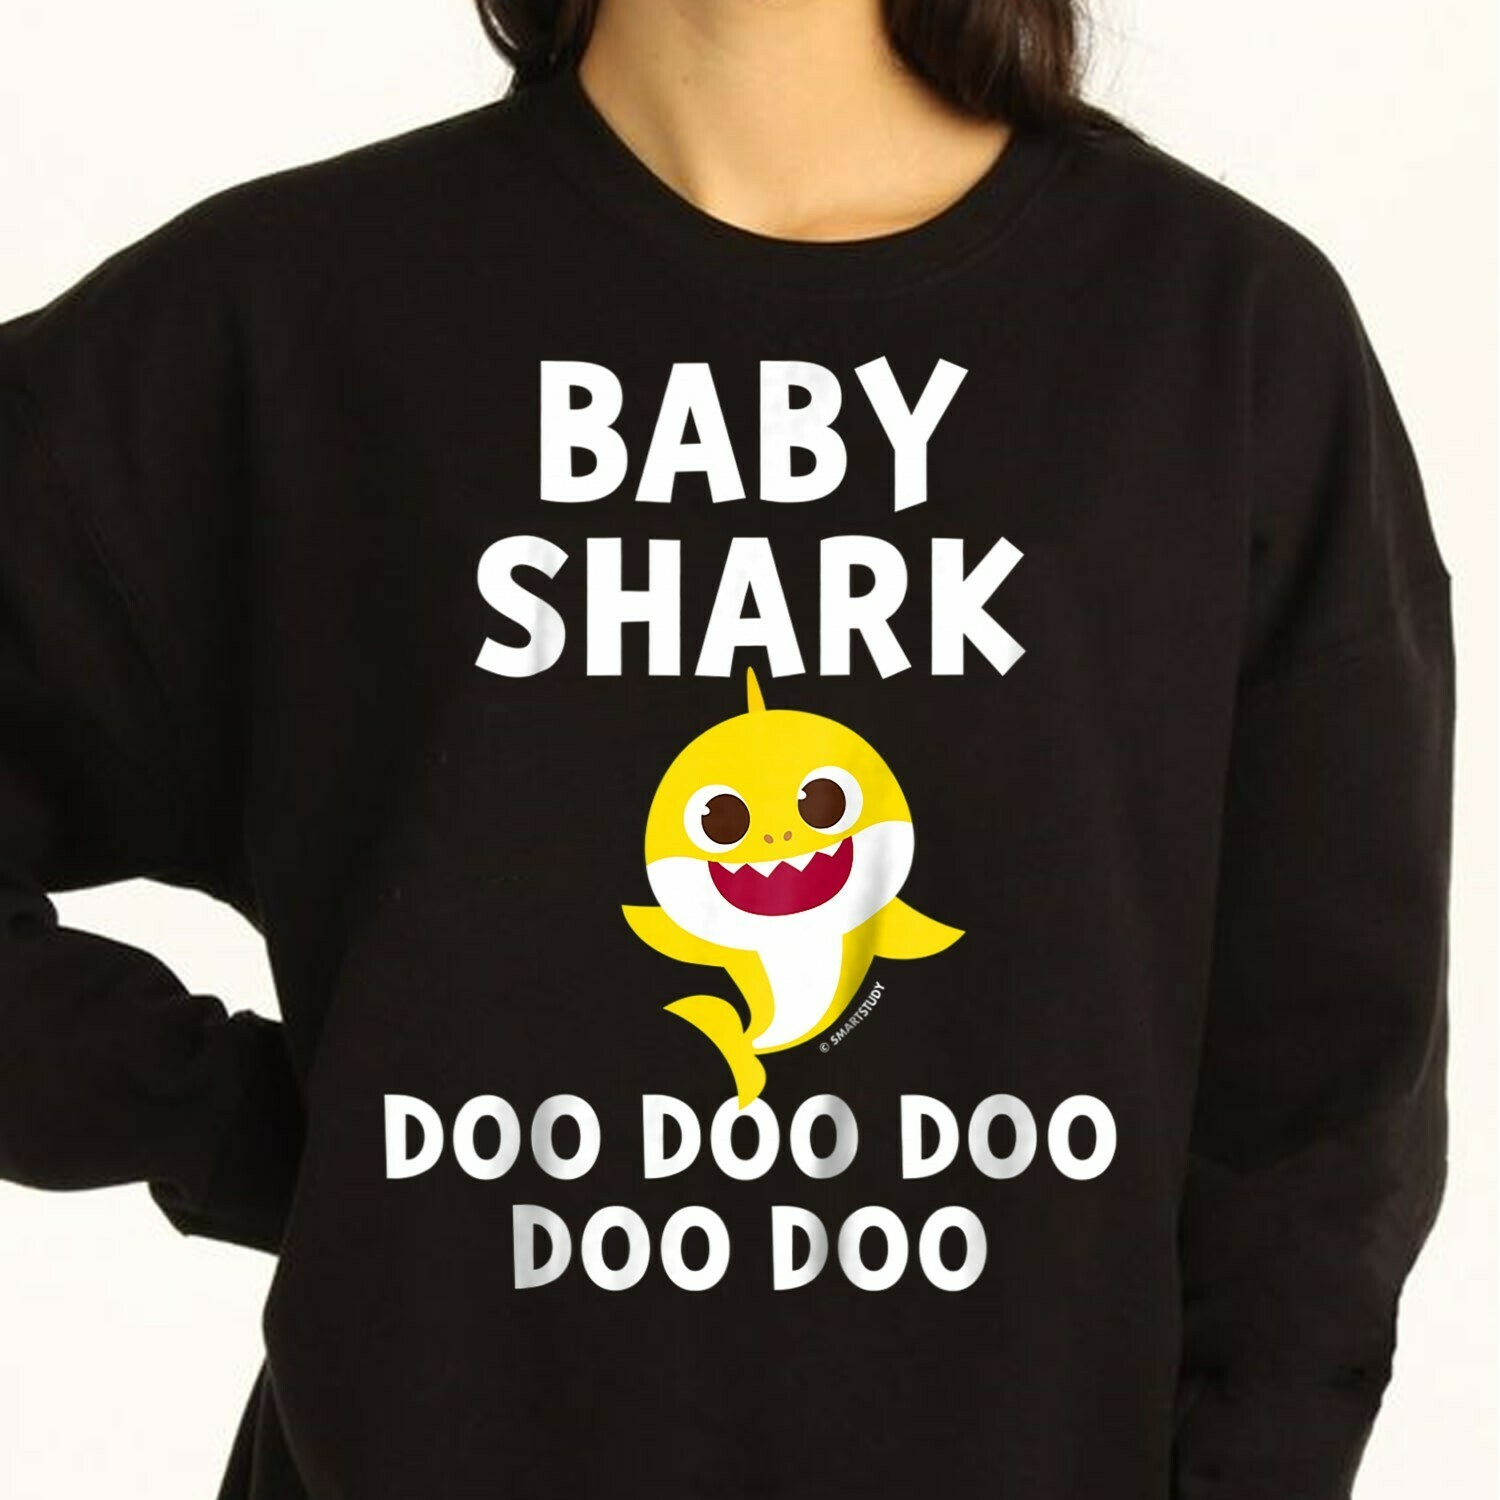 Pinkfong Custom Toddler Baby Shark Doo Doo Doo Family Vacation Shirts Birthday Shark Mommy Daddy Grandma Sister Brother Shark s T-Shirt Sweatshirt Hoodie Long Sleeve Tee Kids Youth Gifts Jolly Family